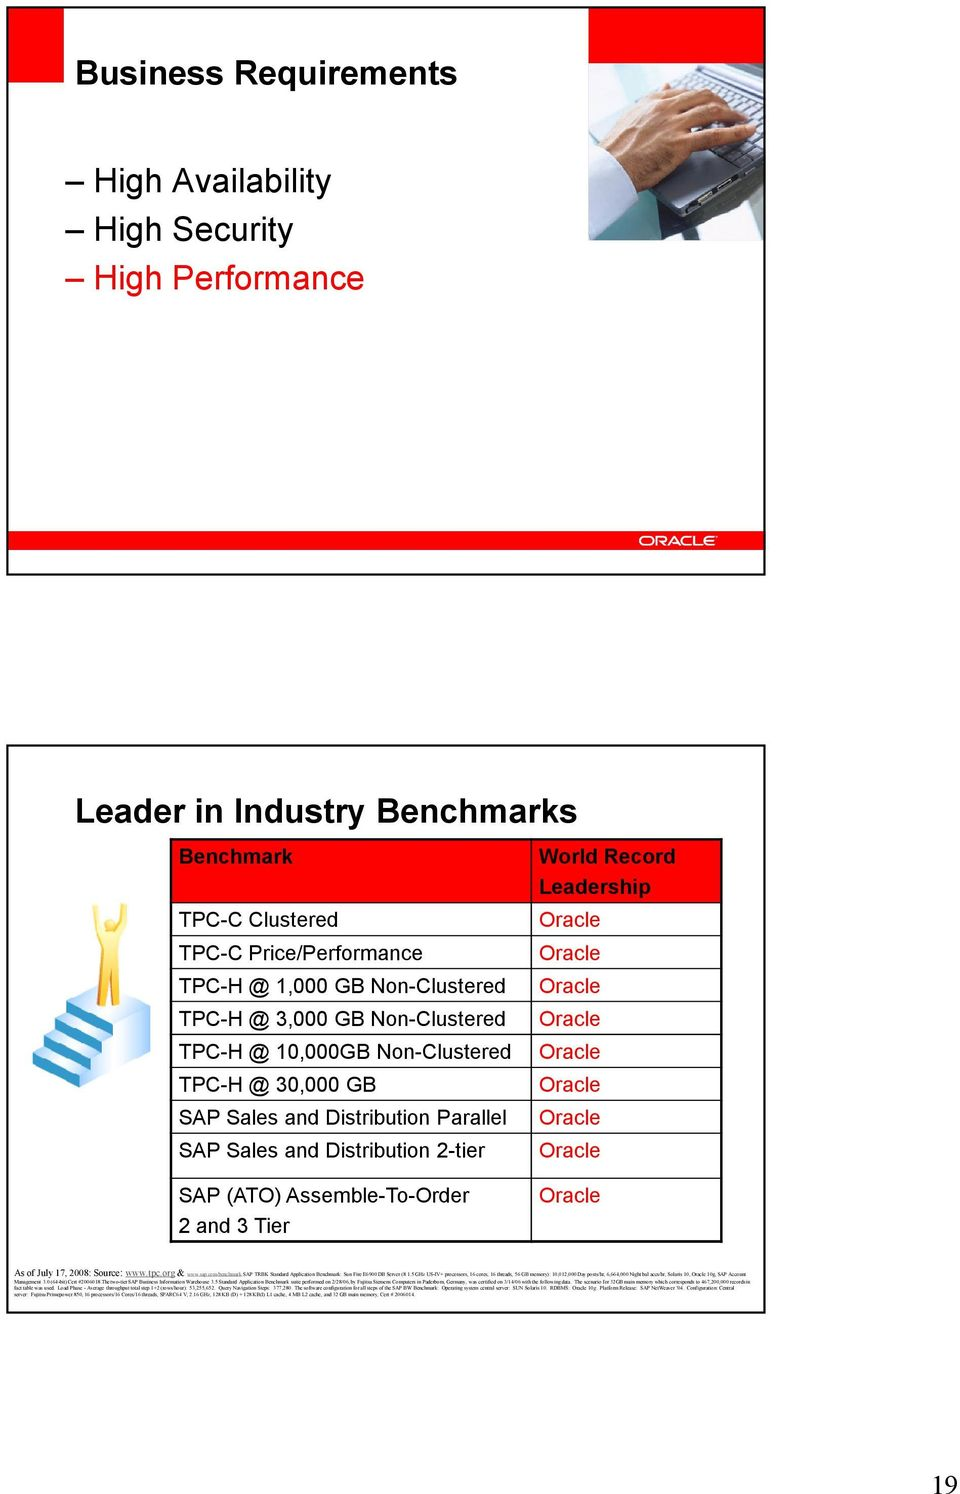 Oracle Oracle Oracle Oracle Oracle Oracle Oracle SAP (ATO) Assemble-To-Order 2 and 3 Tier Oracle As of July 17, 2008: Source: www.tpc.org & www.sap.com/benchmark.